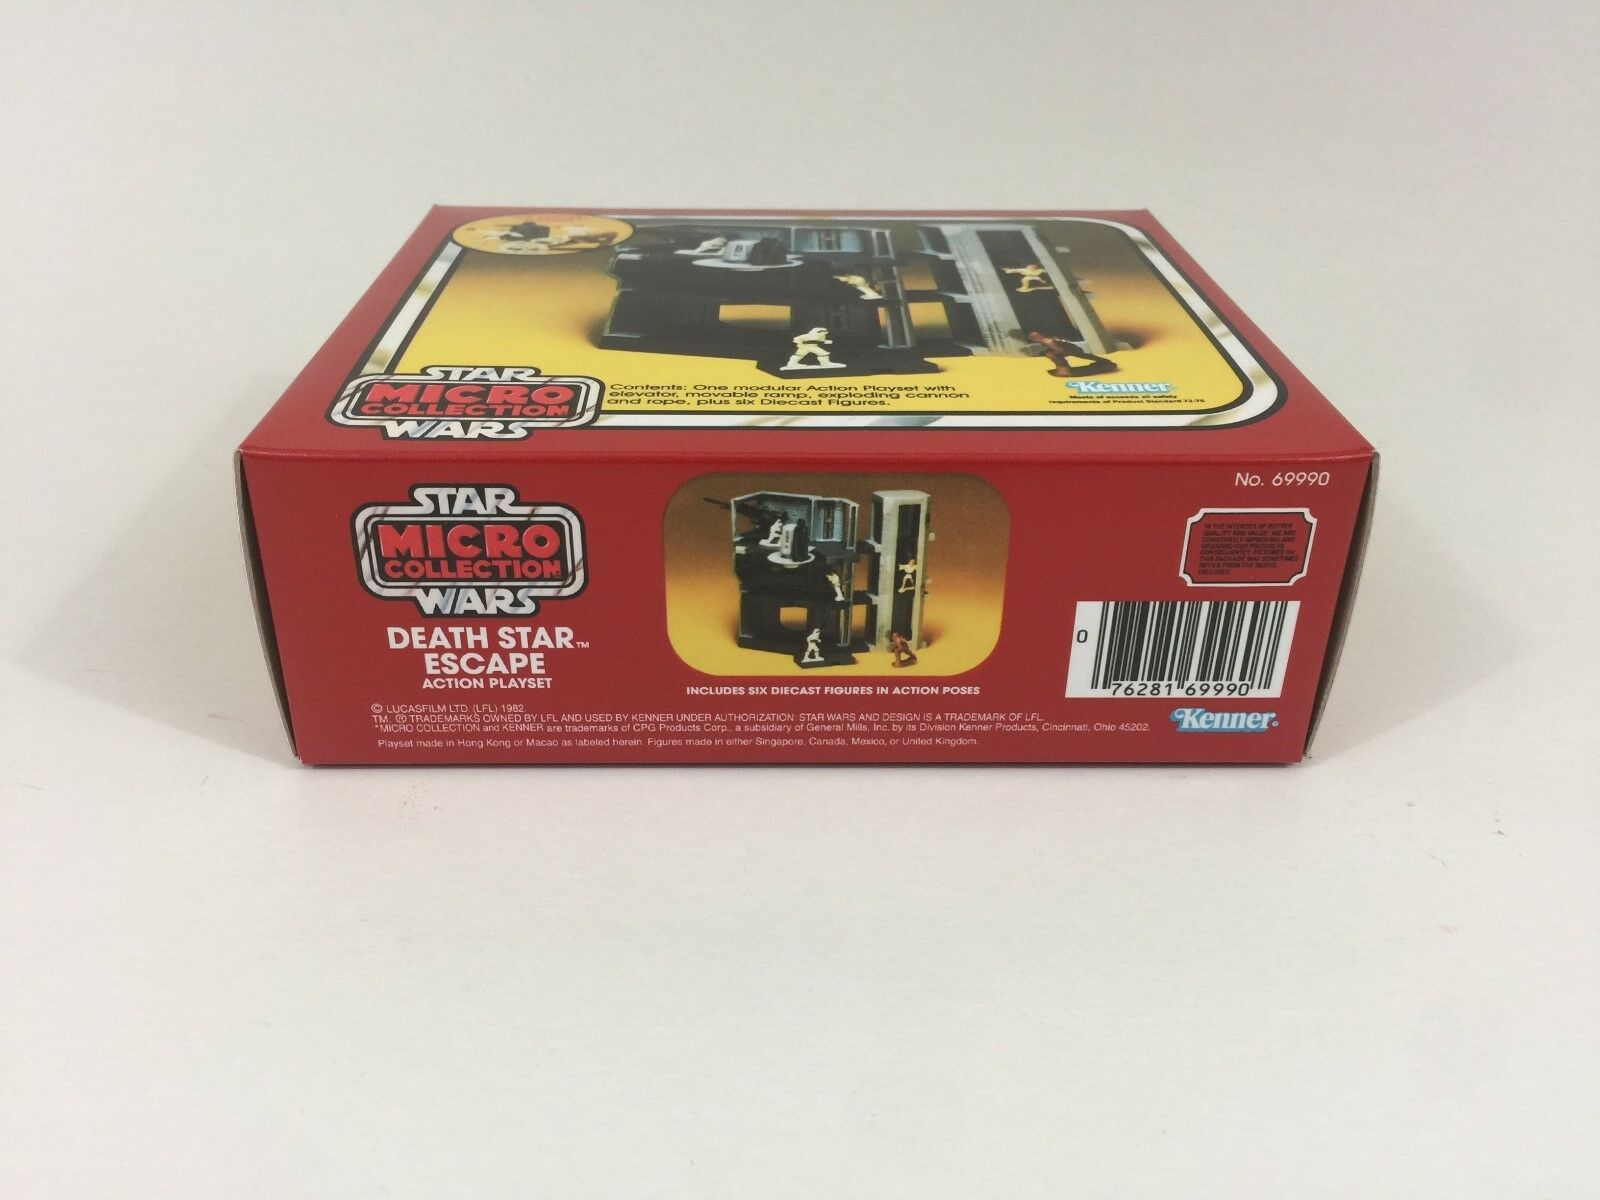 Replacement vintage star wars micro collection death death death star escape box + inserts 75490d